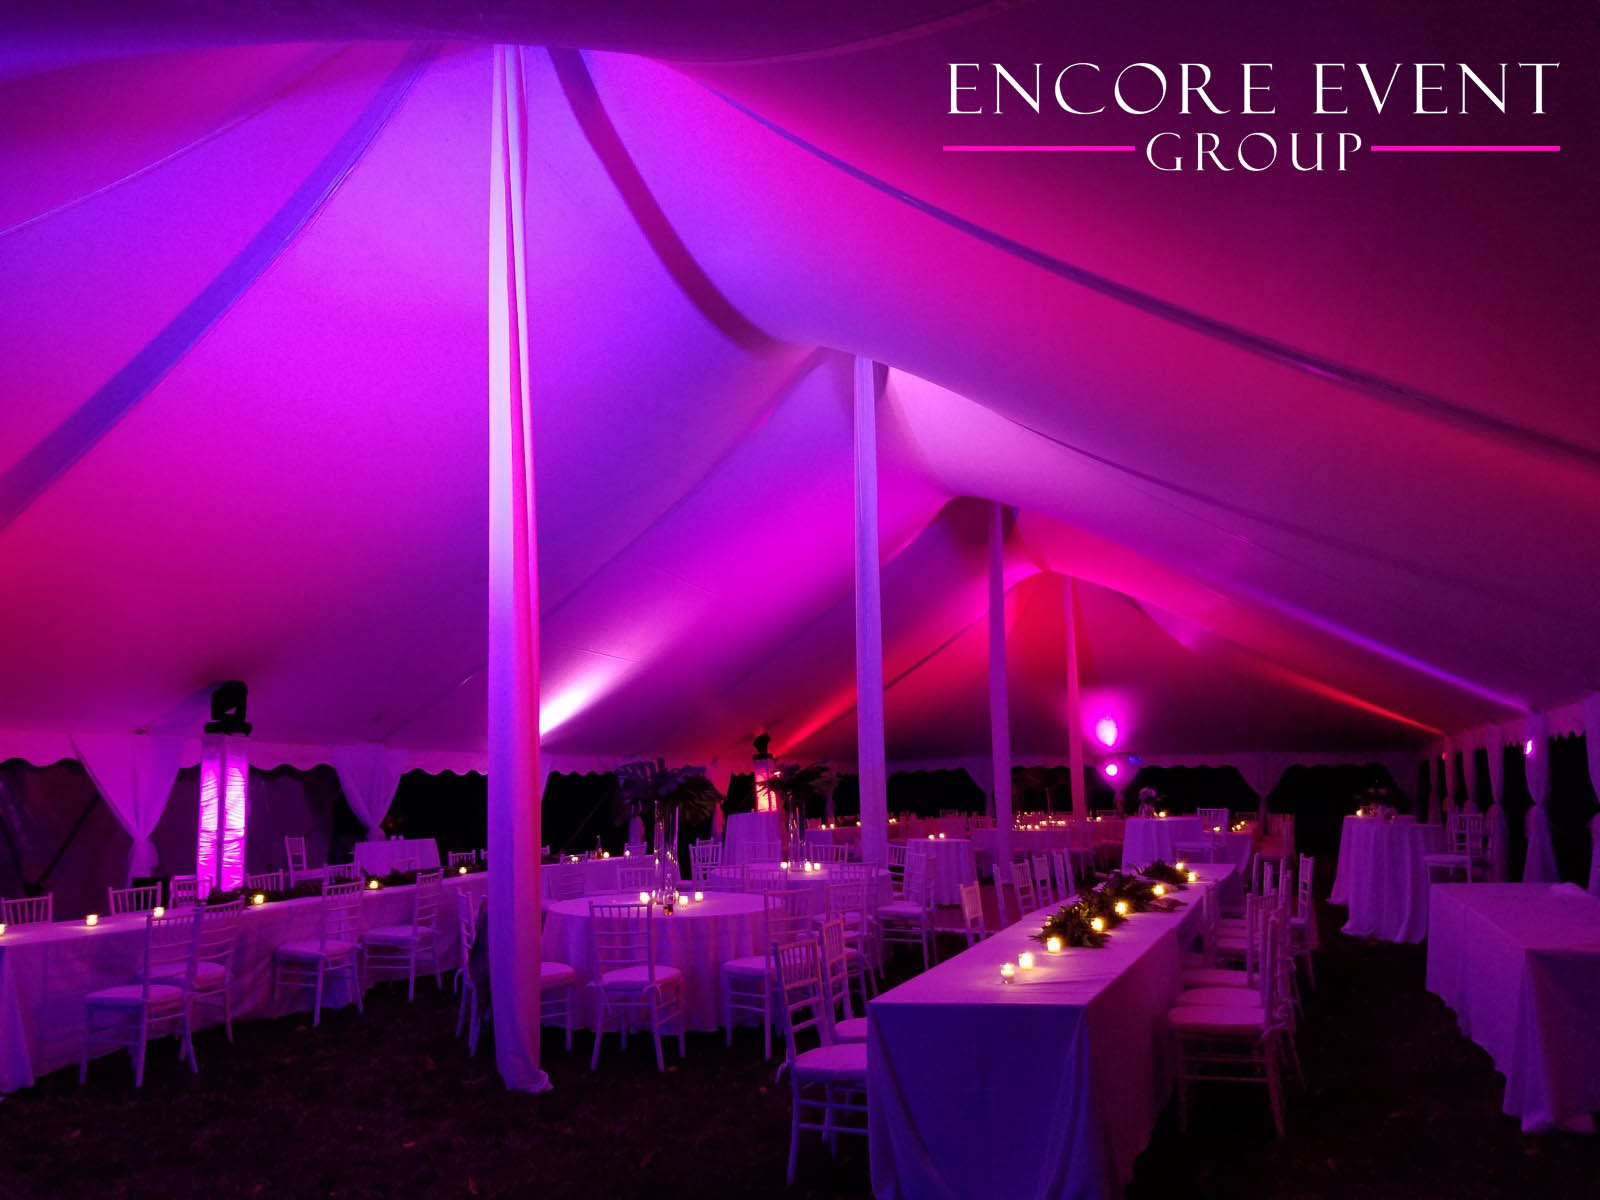 michigan tent canopy uplighting | encore event group